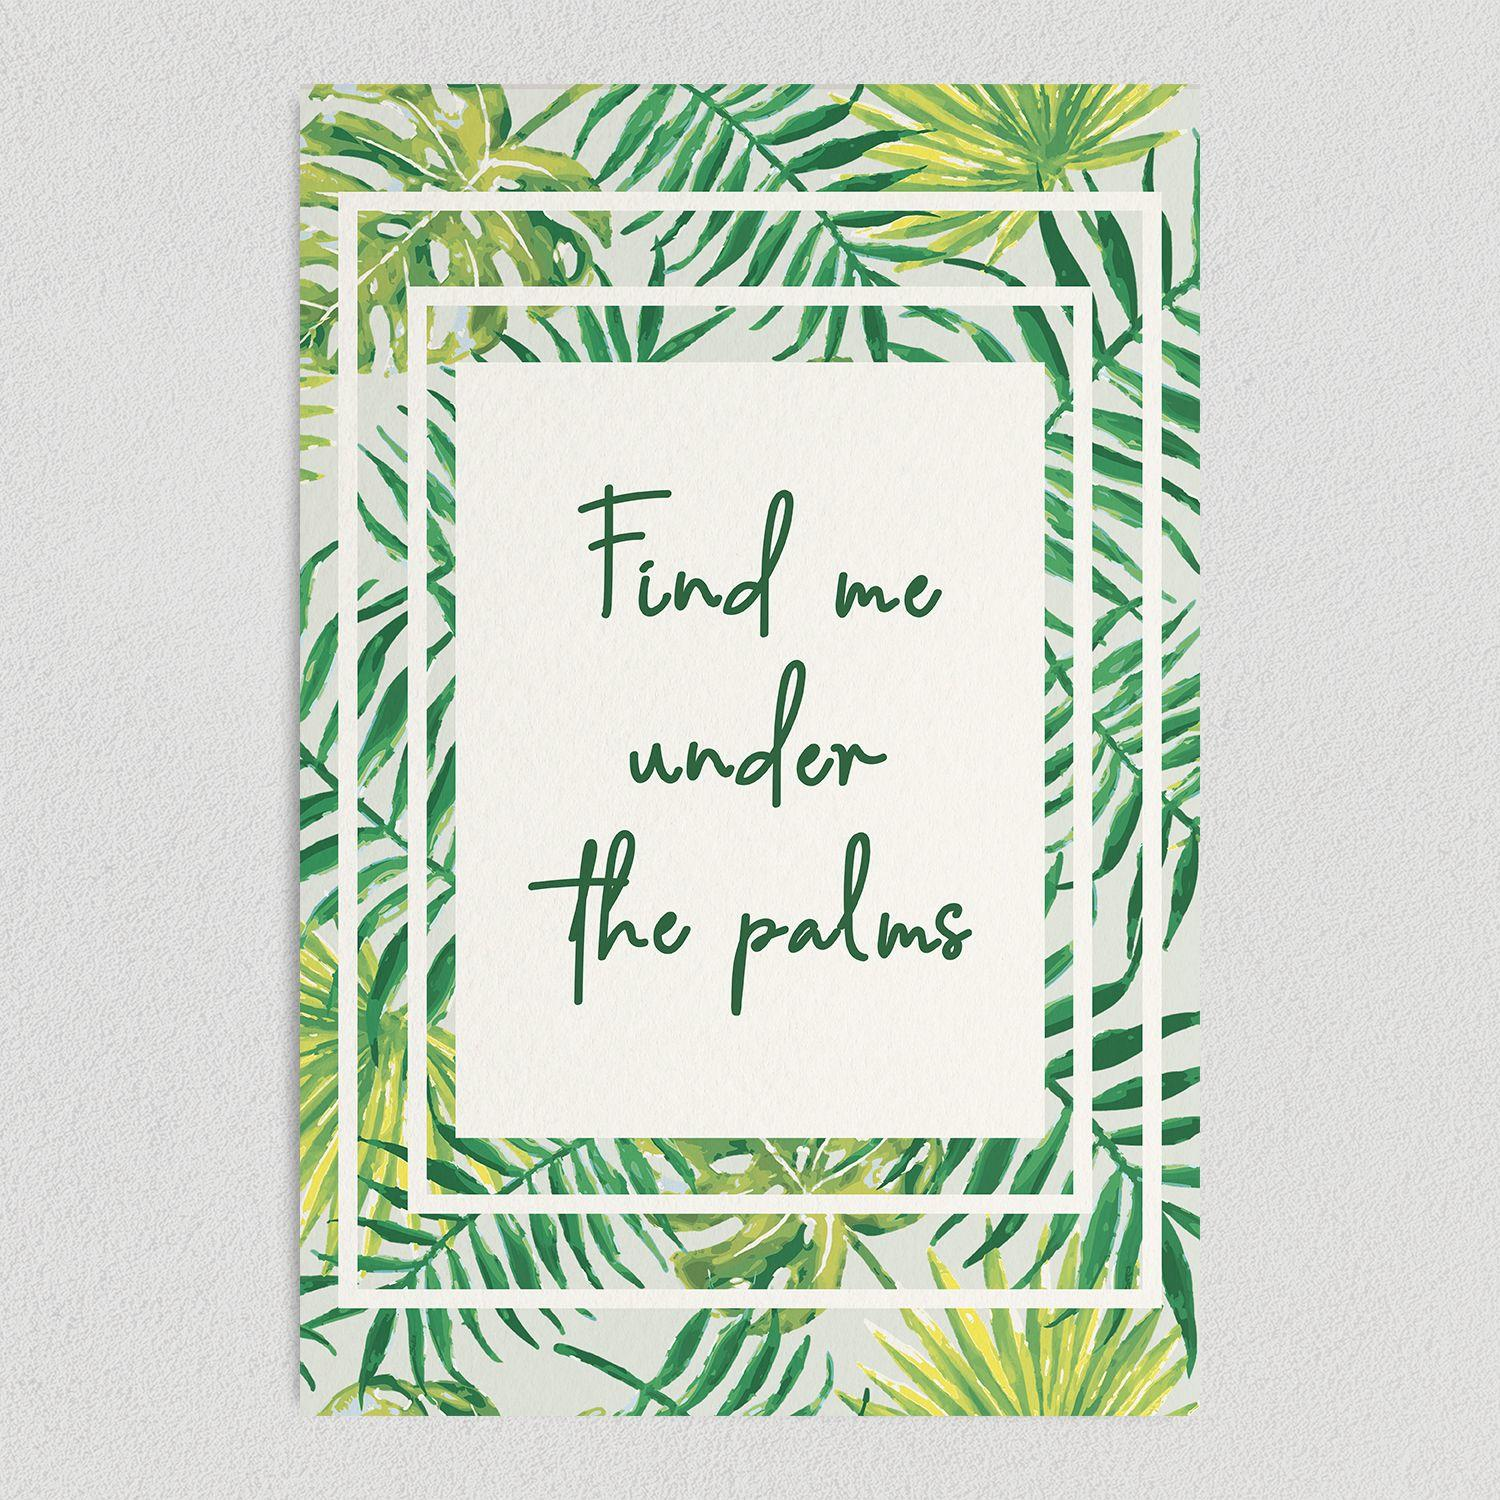 Find Me Under the Palms Art Print Poster 12″ x 18″ TL1020